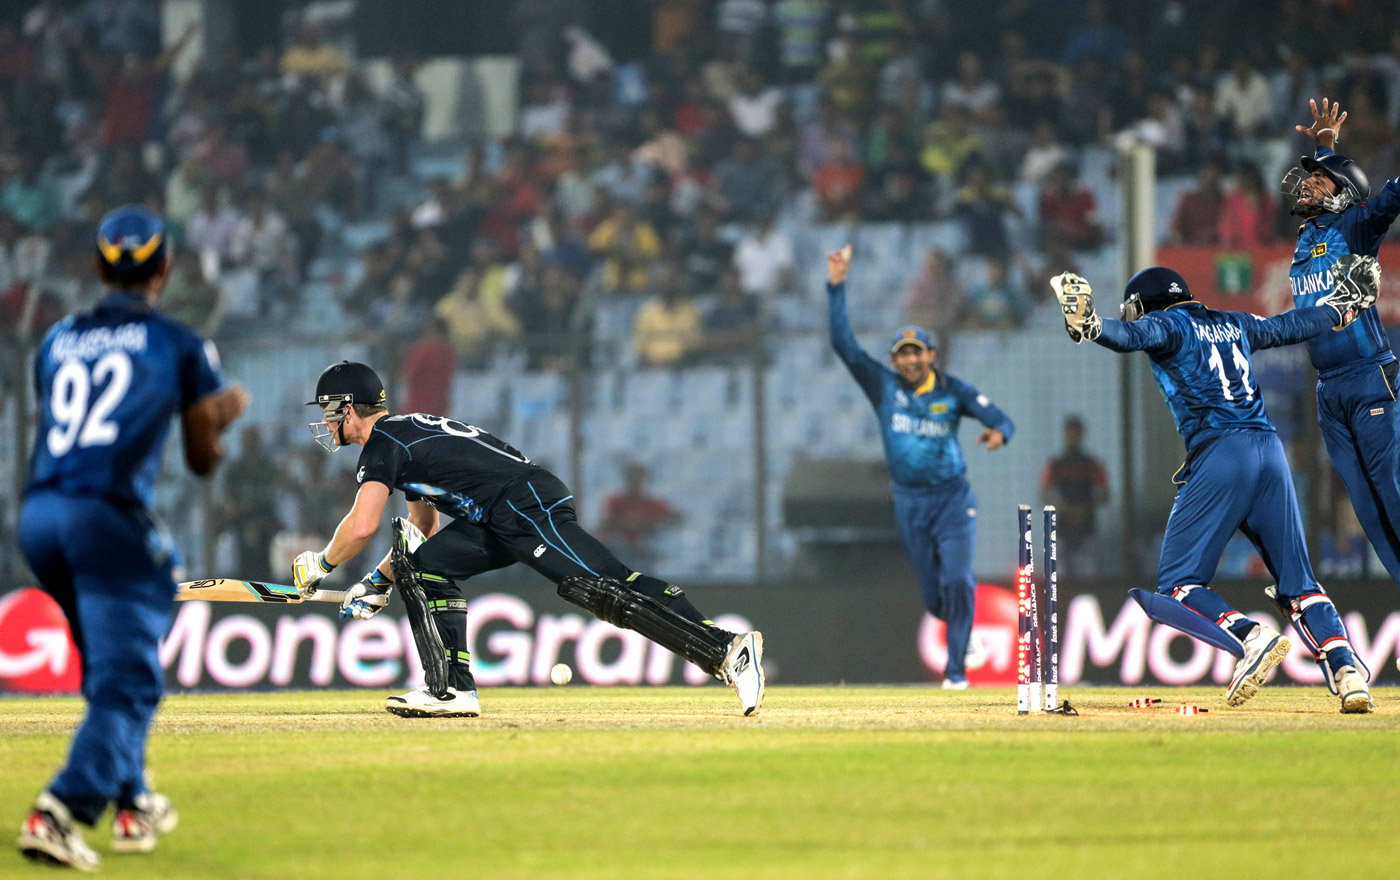 Famous five: Herath's spell of 5 for 3 against New Zealand in the 2014 World T20 sealed his reputation as a  big-tournament player